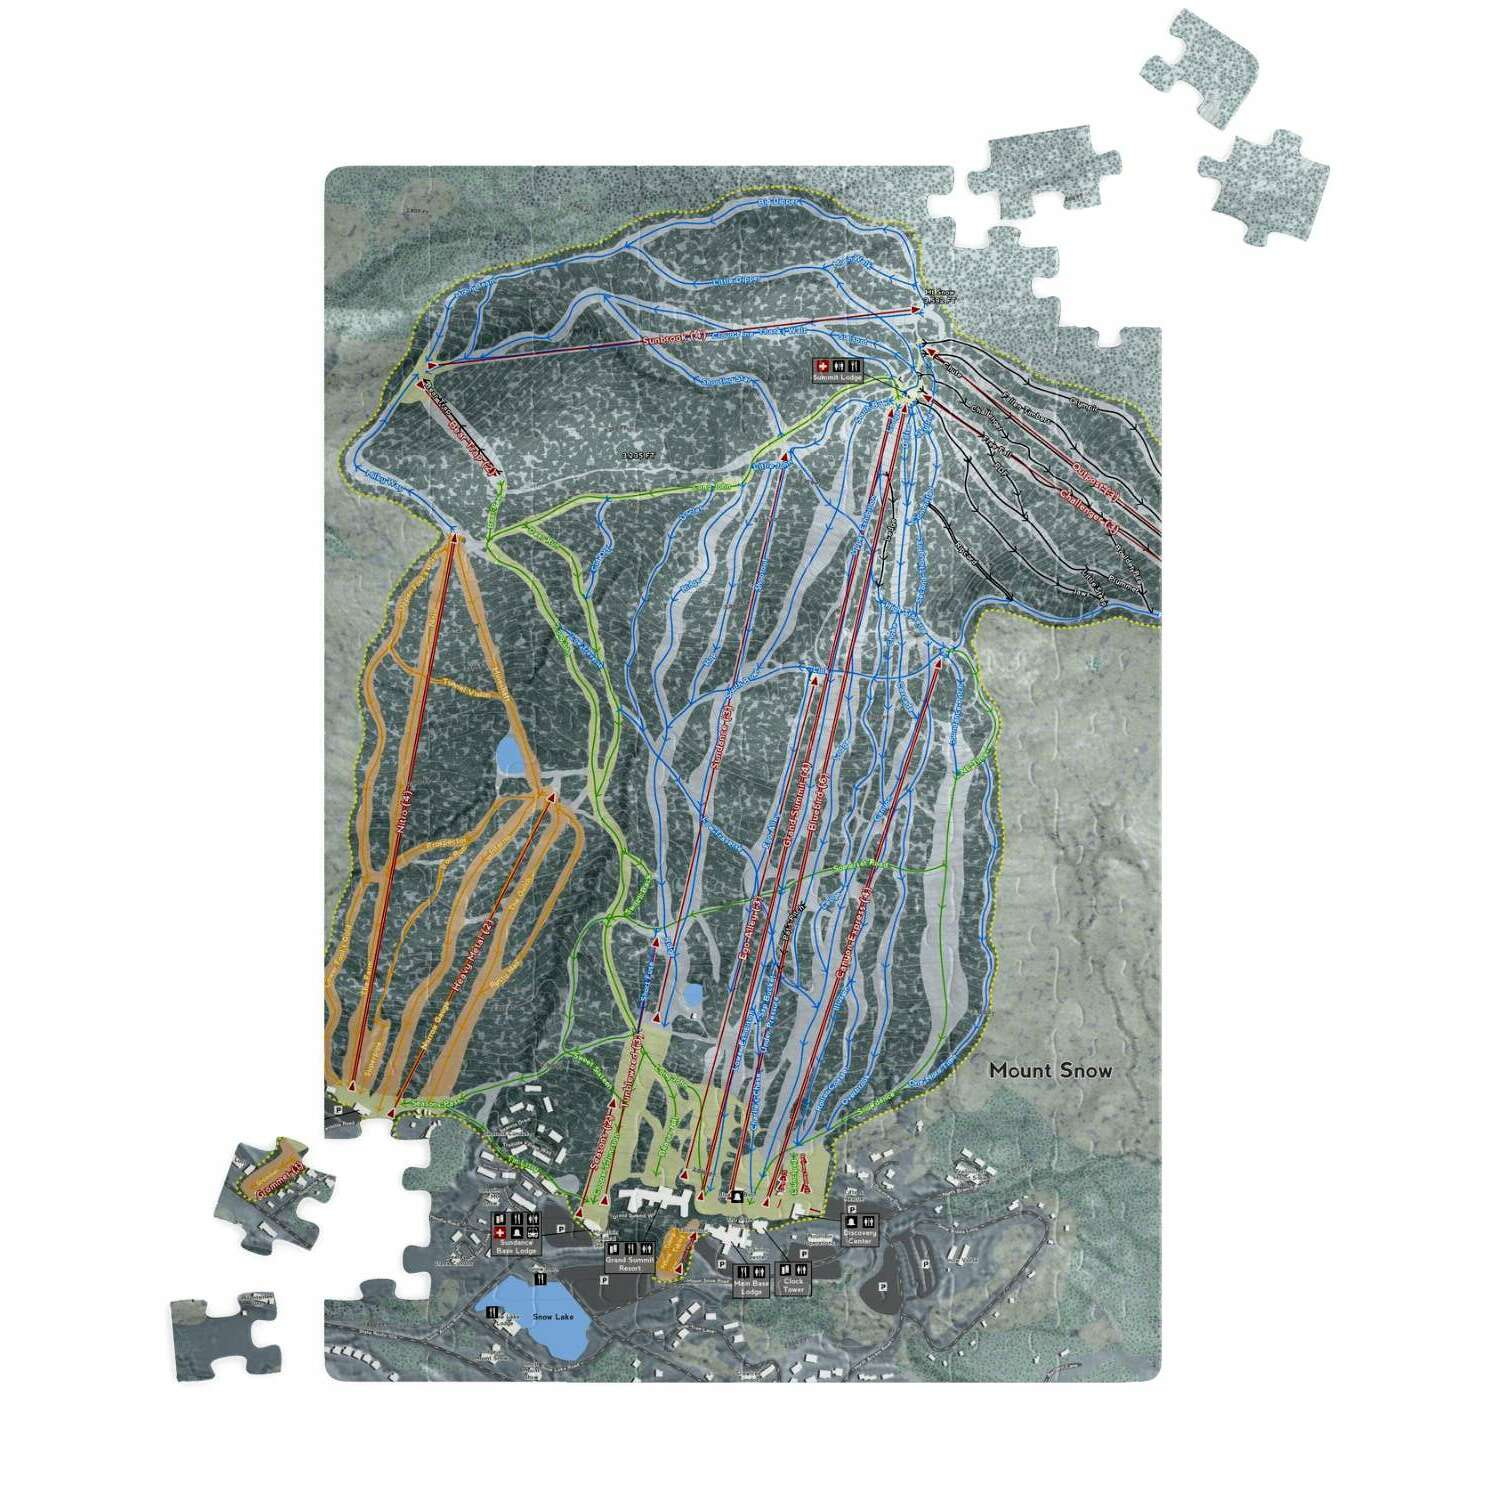 Mount Snow, Vermont Ski Resort Map Puzzle